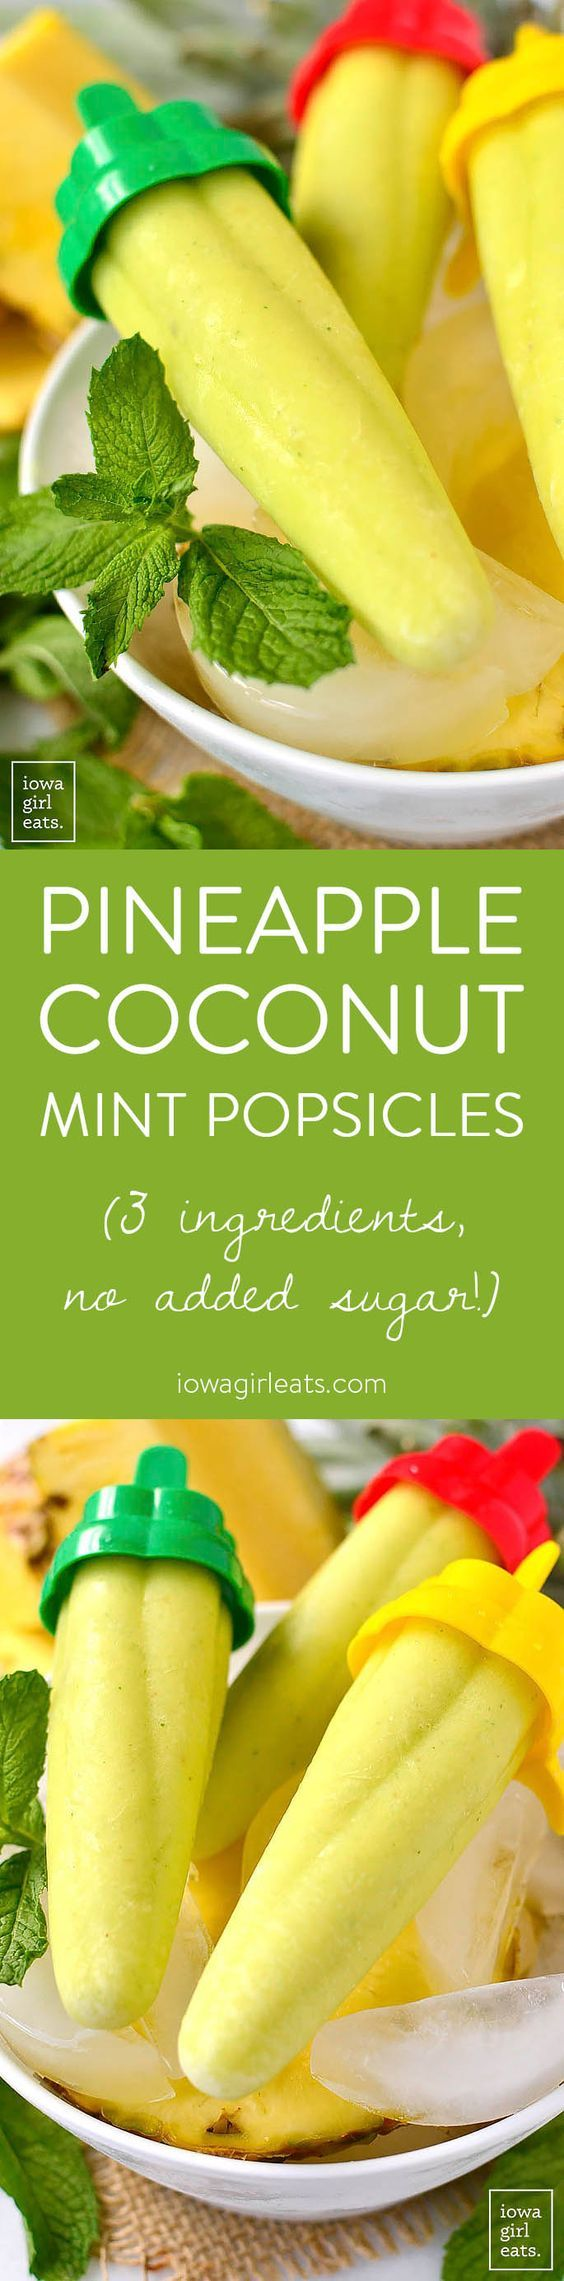 Pineapple Coconut Mint Popsicles are a 3-ingredient, sugar-free popsicle recipe for the hottest of summer days!   iowagirleats.com